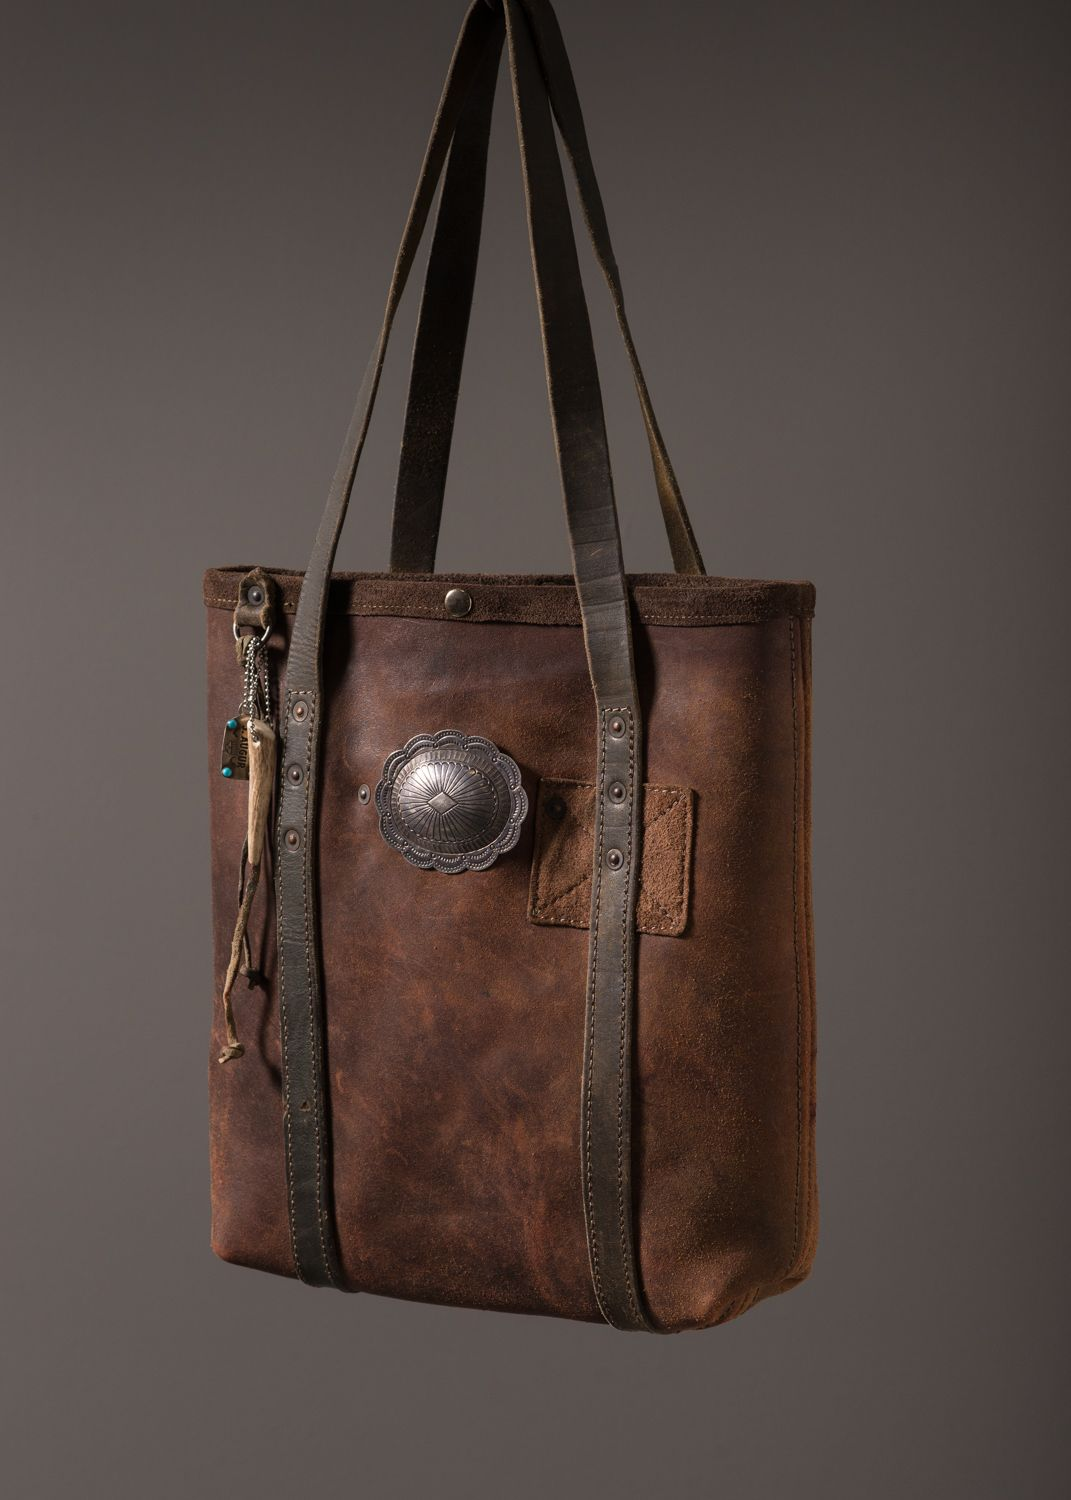 Chaps Leather Mini Tote – J AUGUR DESIGN